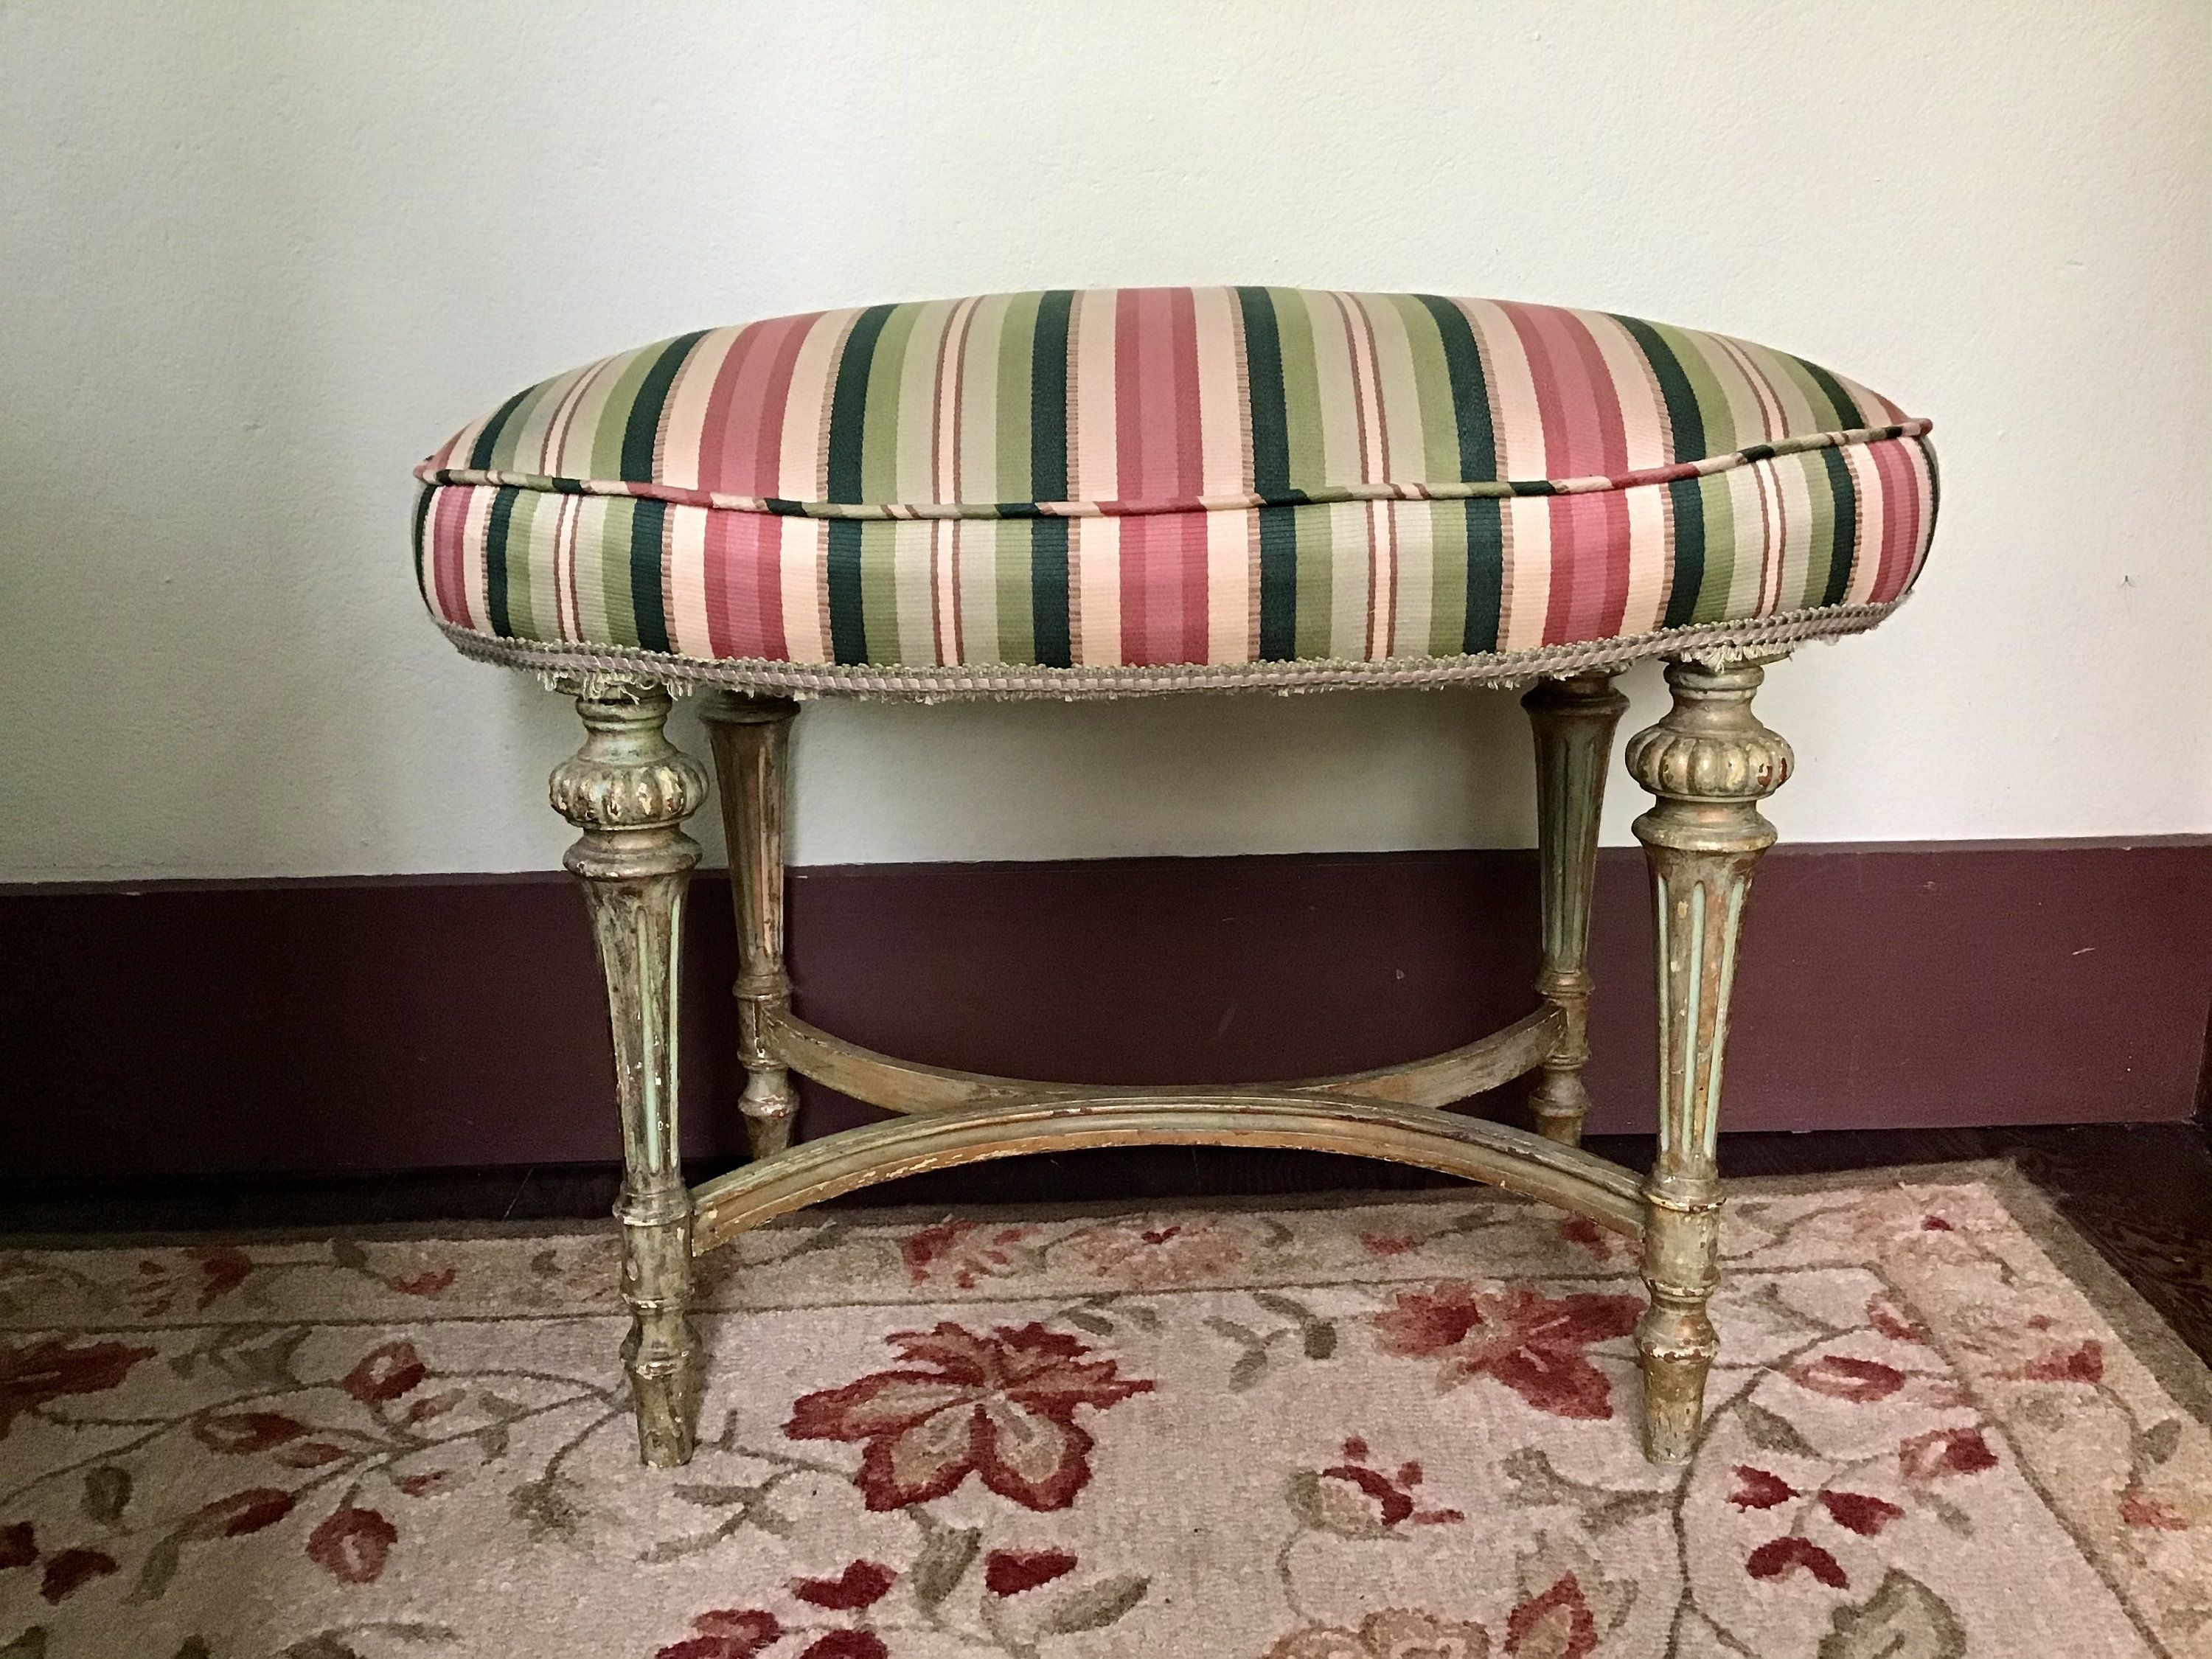 Upholstered Stool Vintage Vanity Stool Distressed Stool Painted Bench Shabby Chic Upholstered Stool Vanity Stool Vintage Vanity